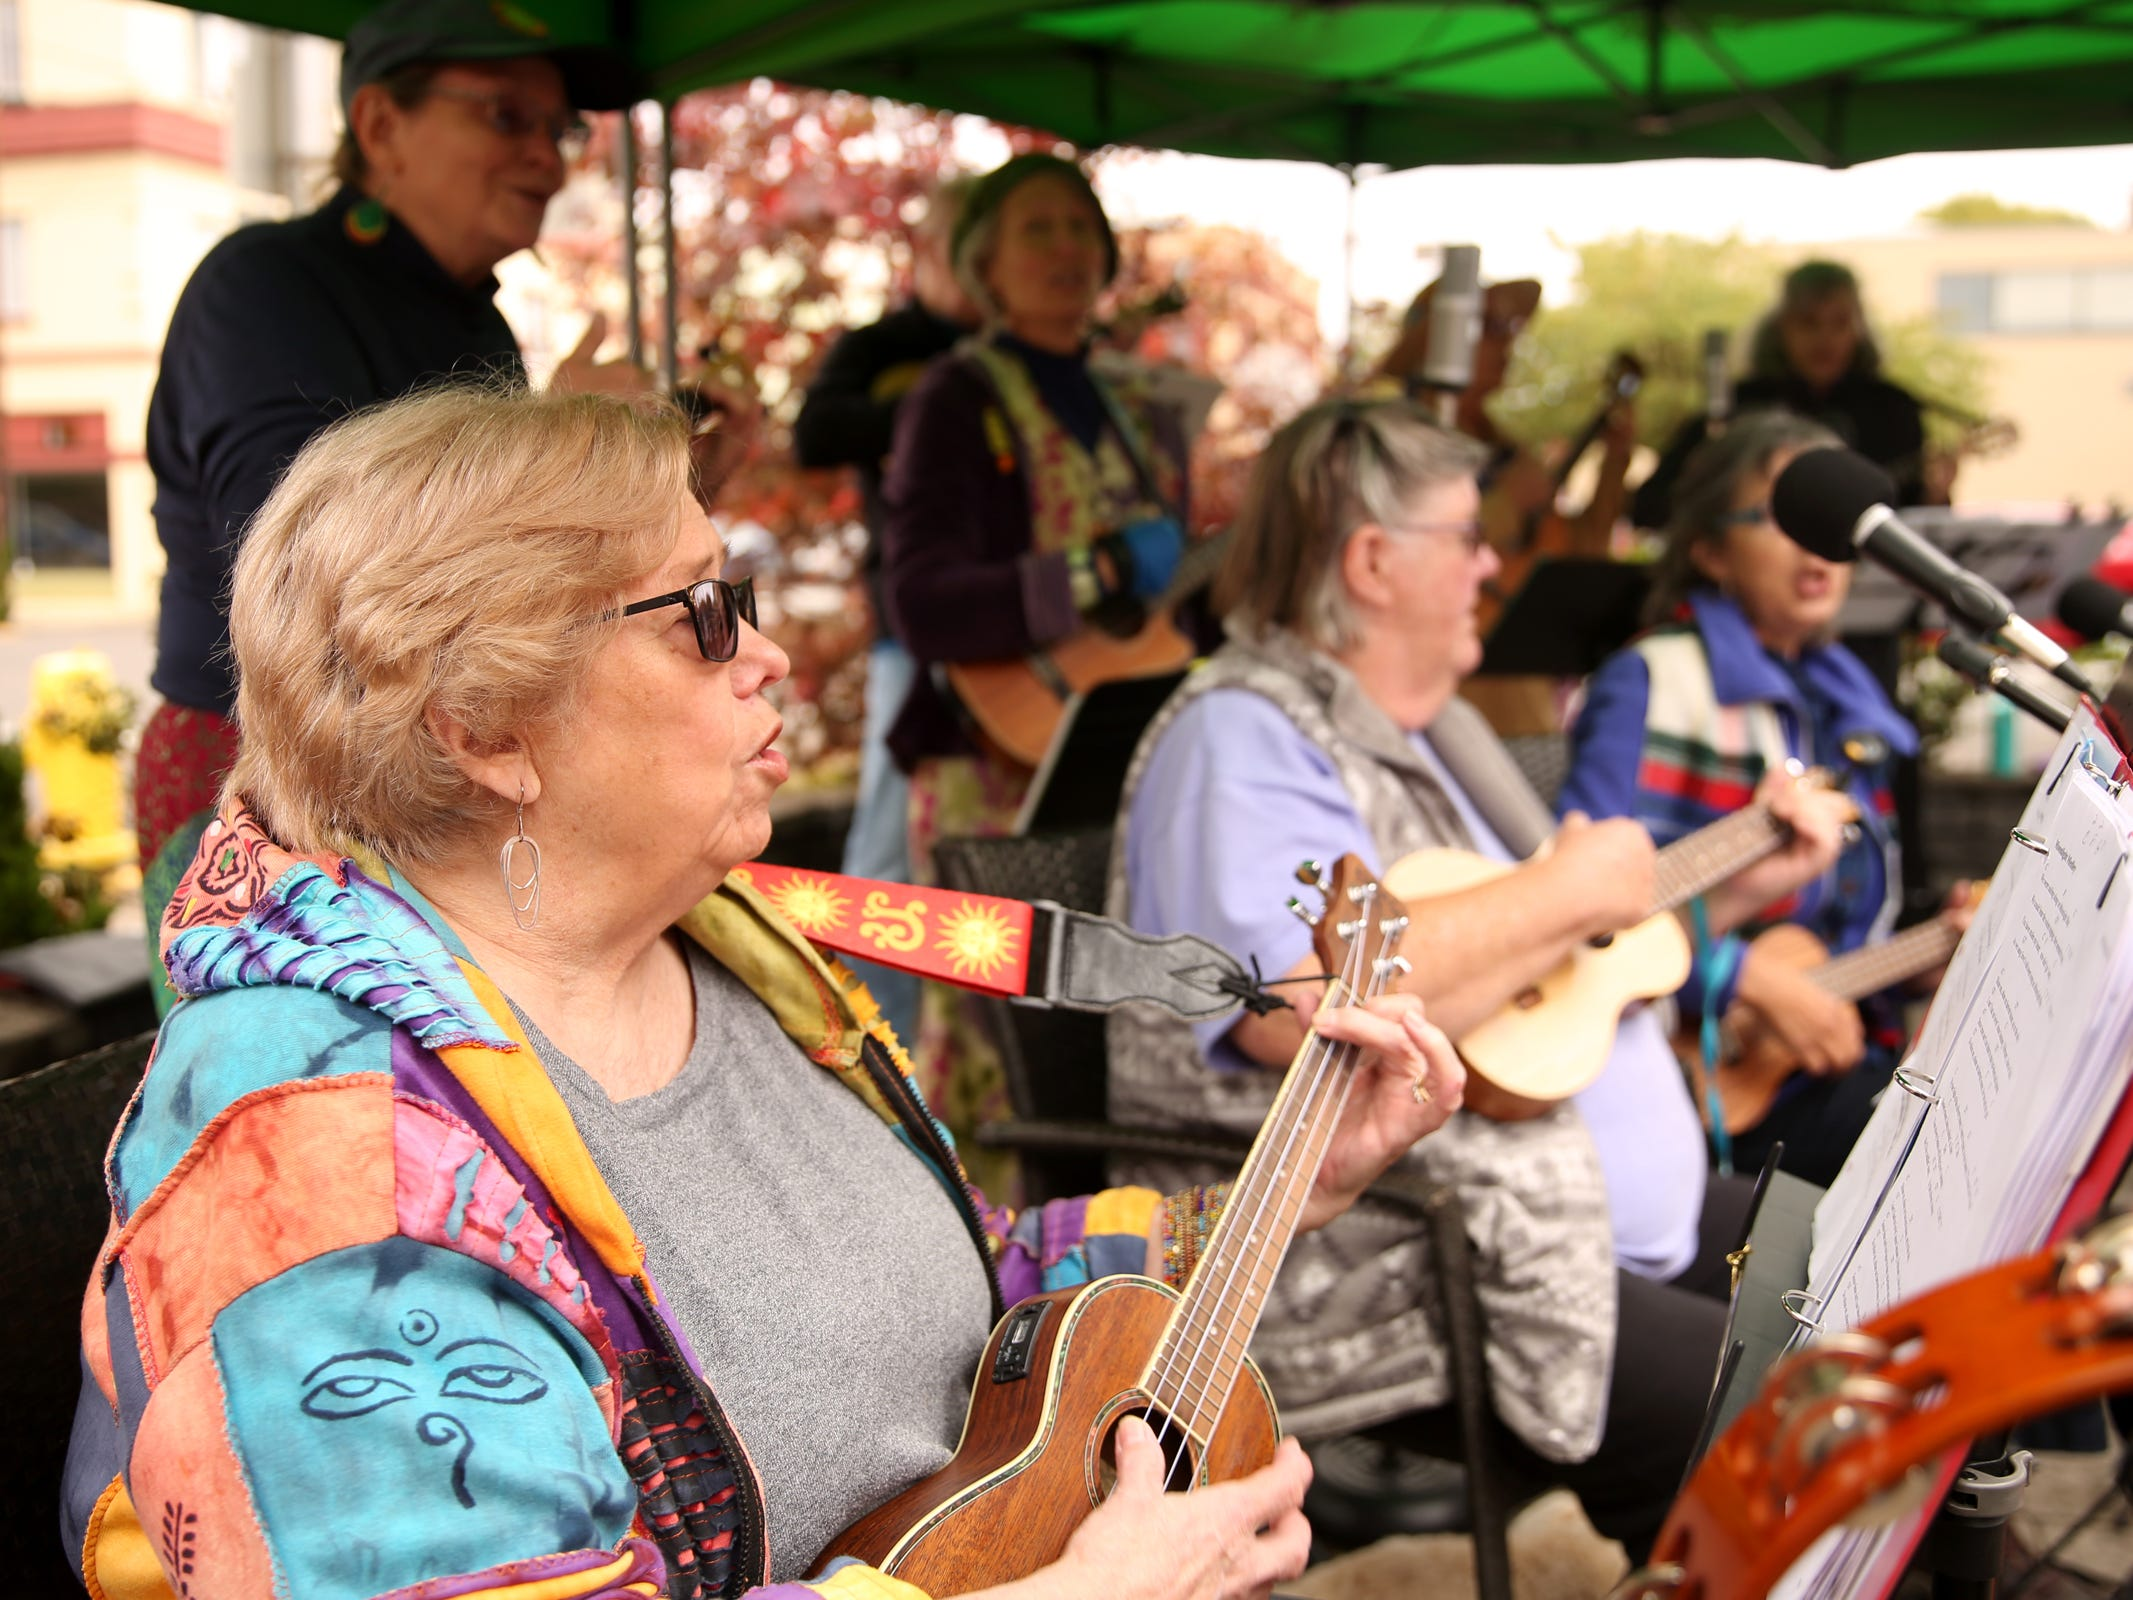 The Silverton Ukulele Network performs during the Silverton Sidewalk Shindig, a culture of music festival, in downtown Silverton on Saturday, Oct. 6, 2018.